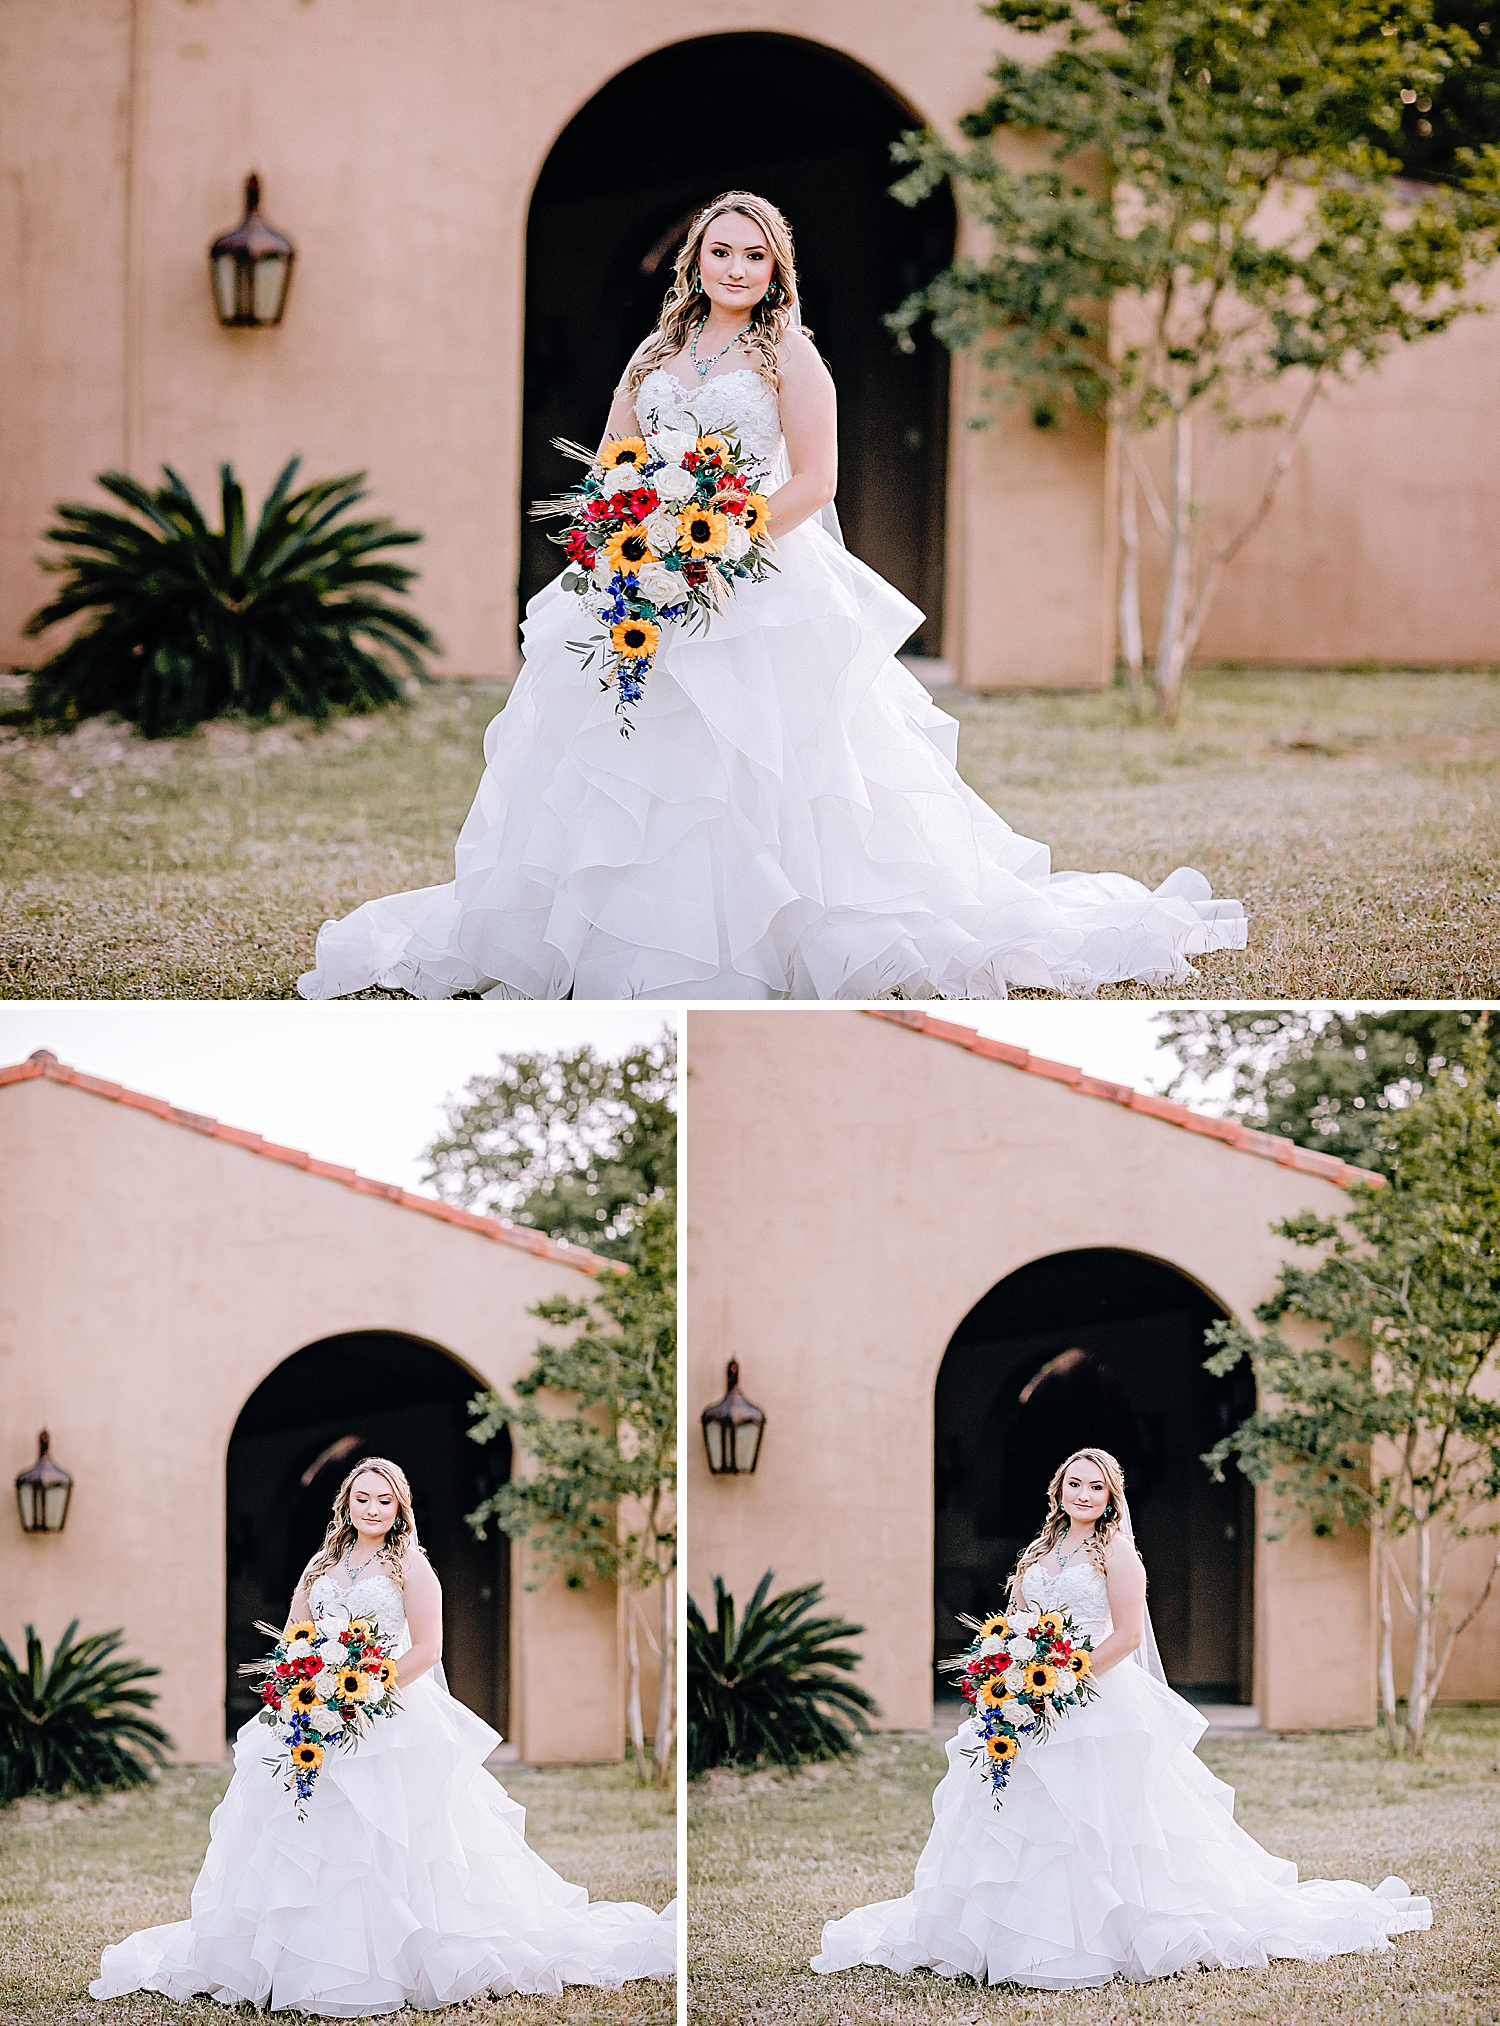 Carly-Barton-Photography-Texas-Bridals-Boerne-Rustic-Wedding-Photos_0017.jpg